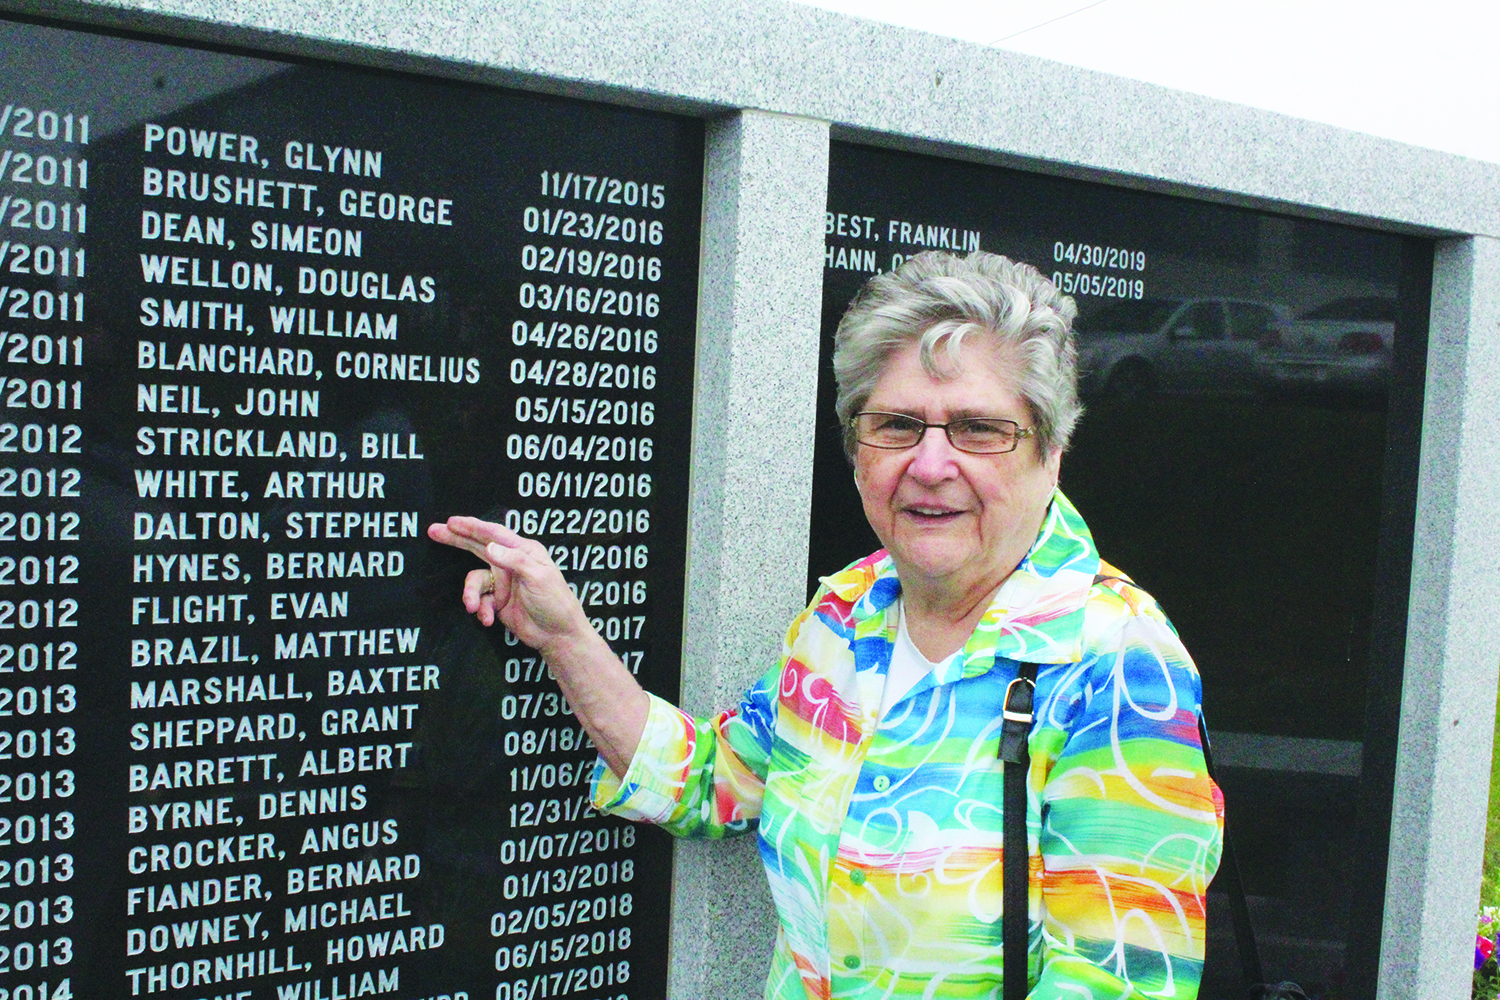 Violet Dalton was one of about a hundred people who attended the Local 740 memorial dedication on Aug. 9. Her late husband, Stephen Dalton, is memorialized on the wall.